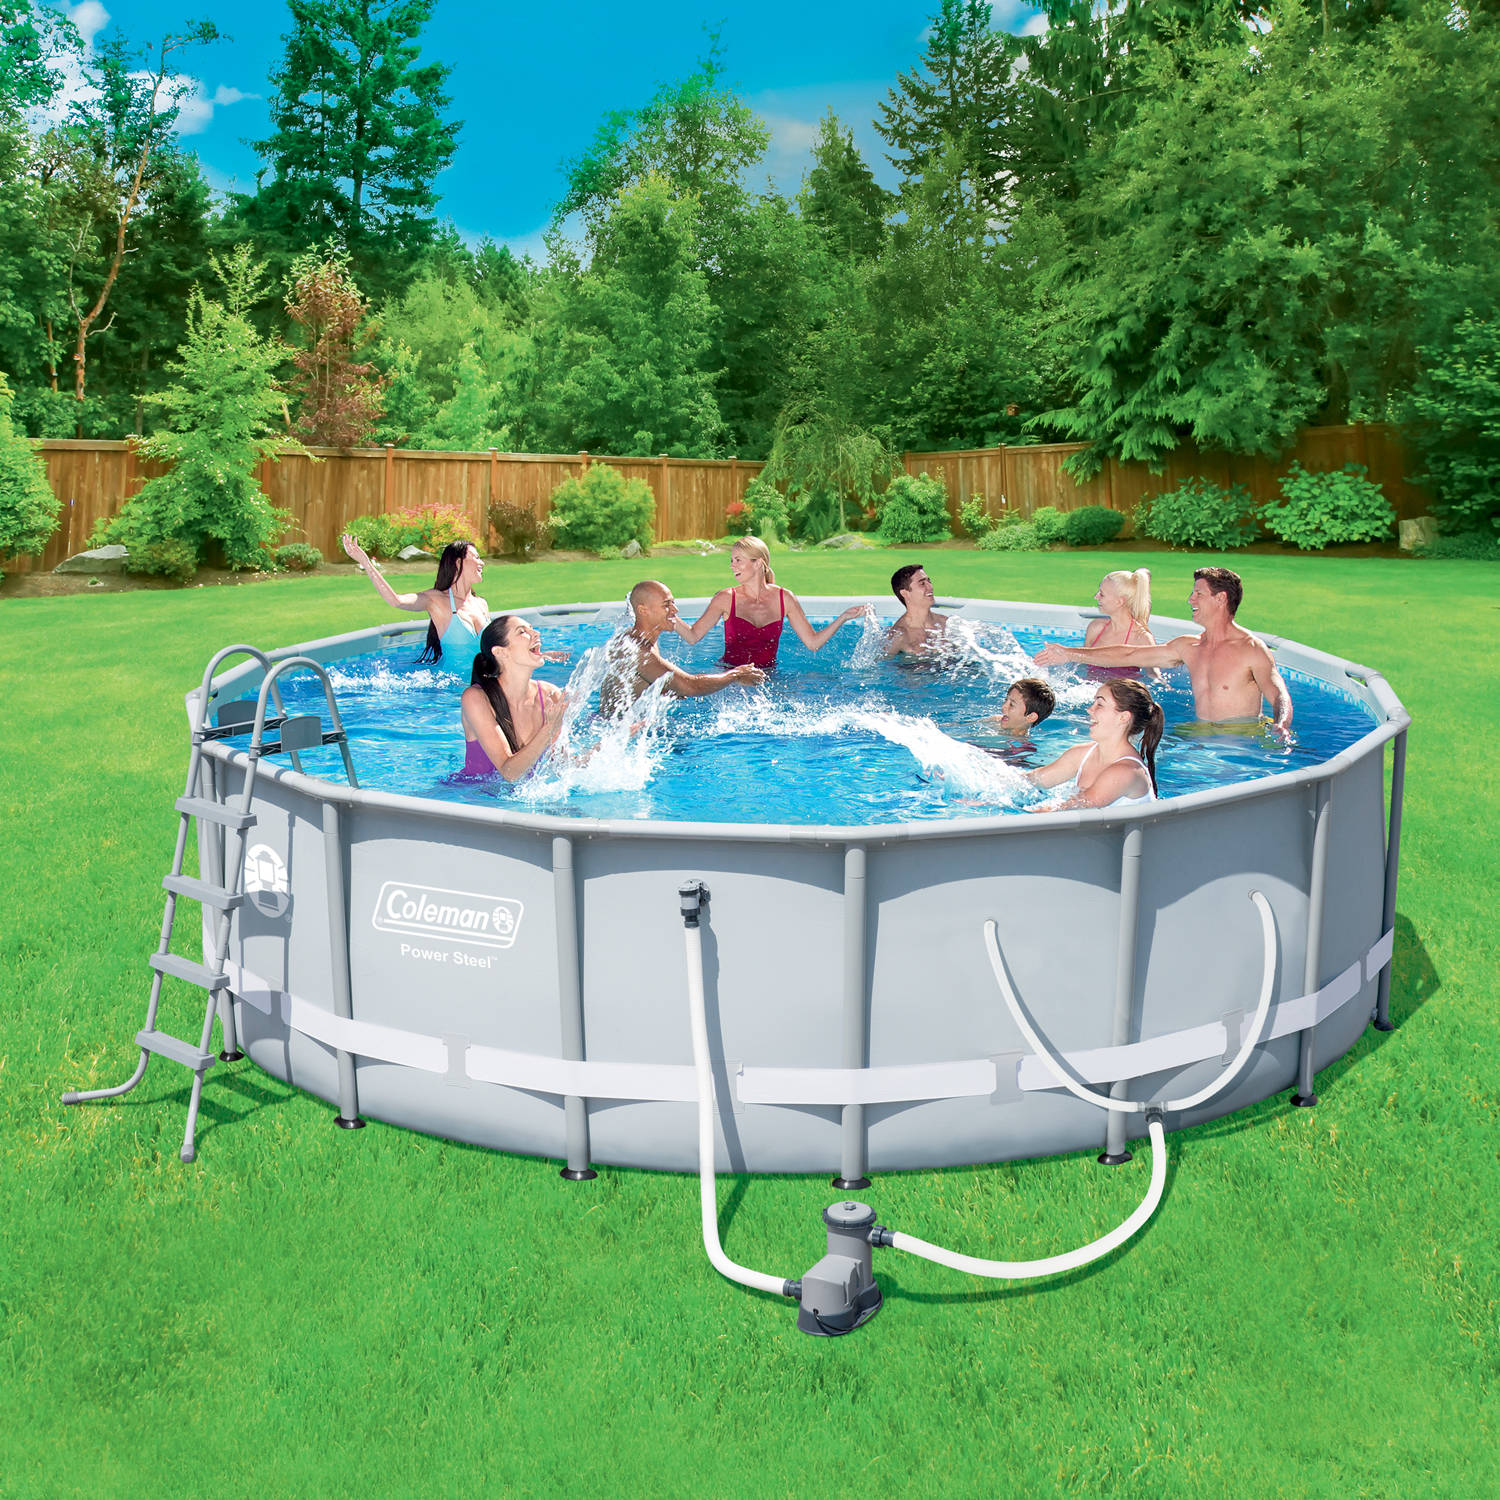 """Coleman Power Steel 16' x 48"""" Frame Swimming Pool Set by Bestway Inflatables & Material Corp."""